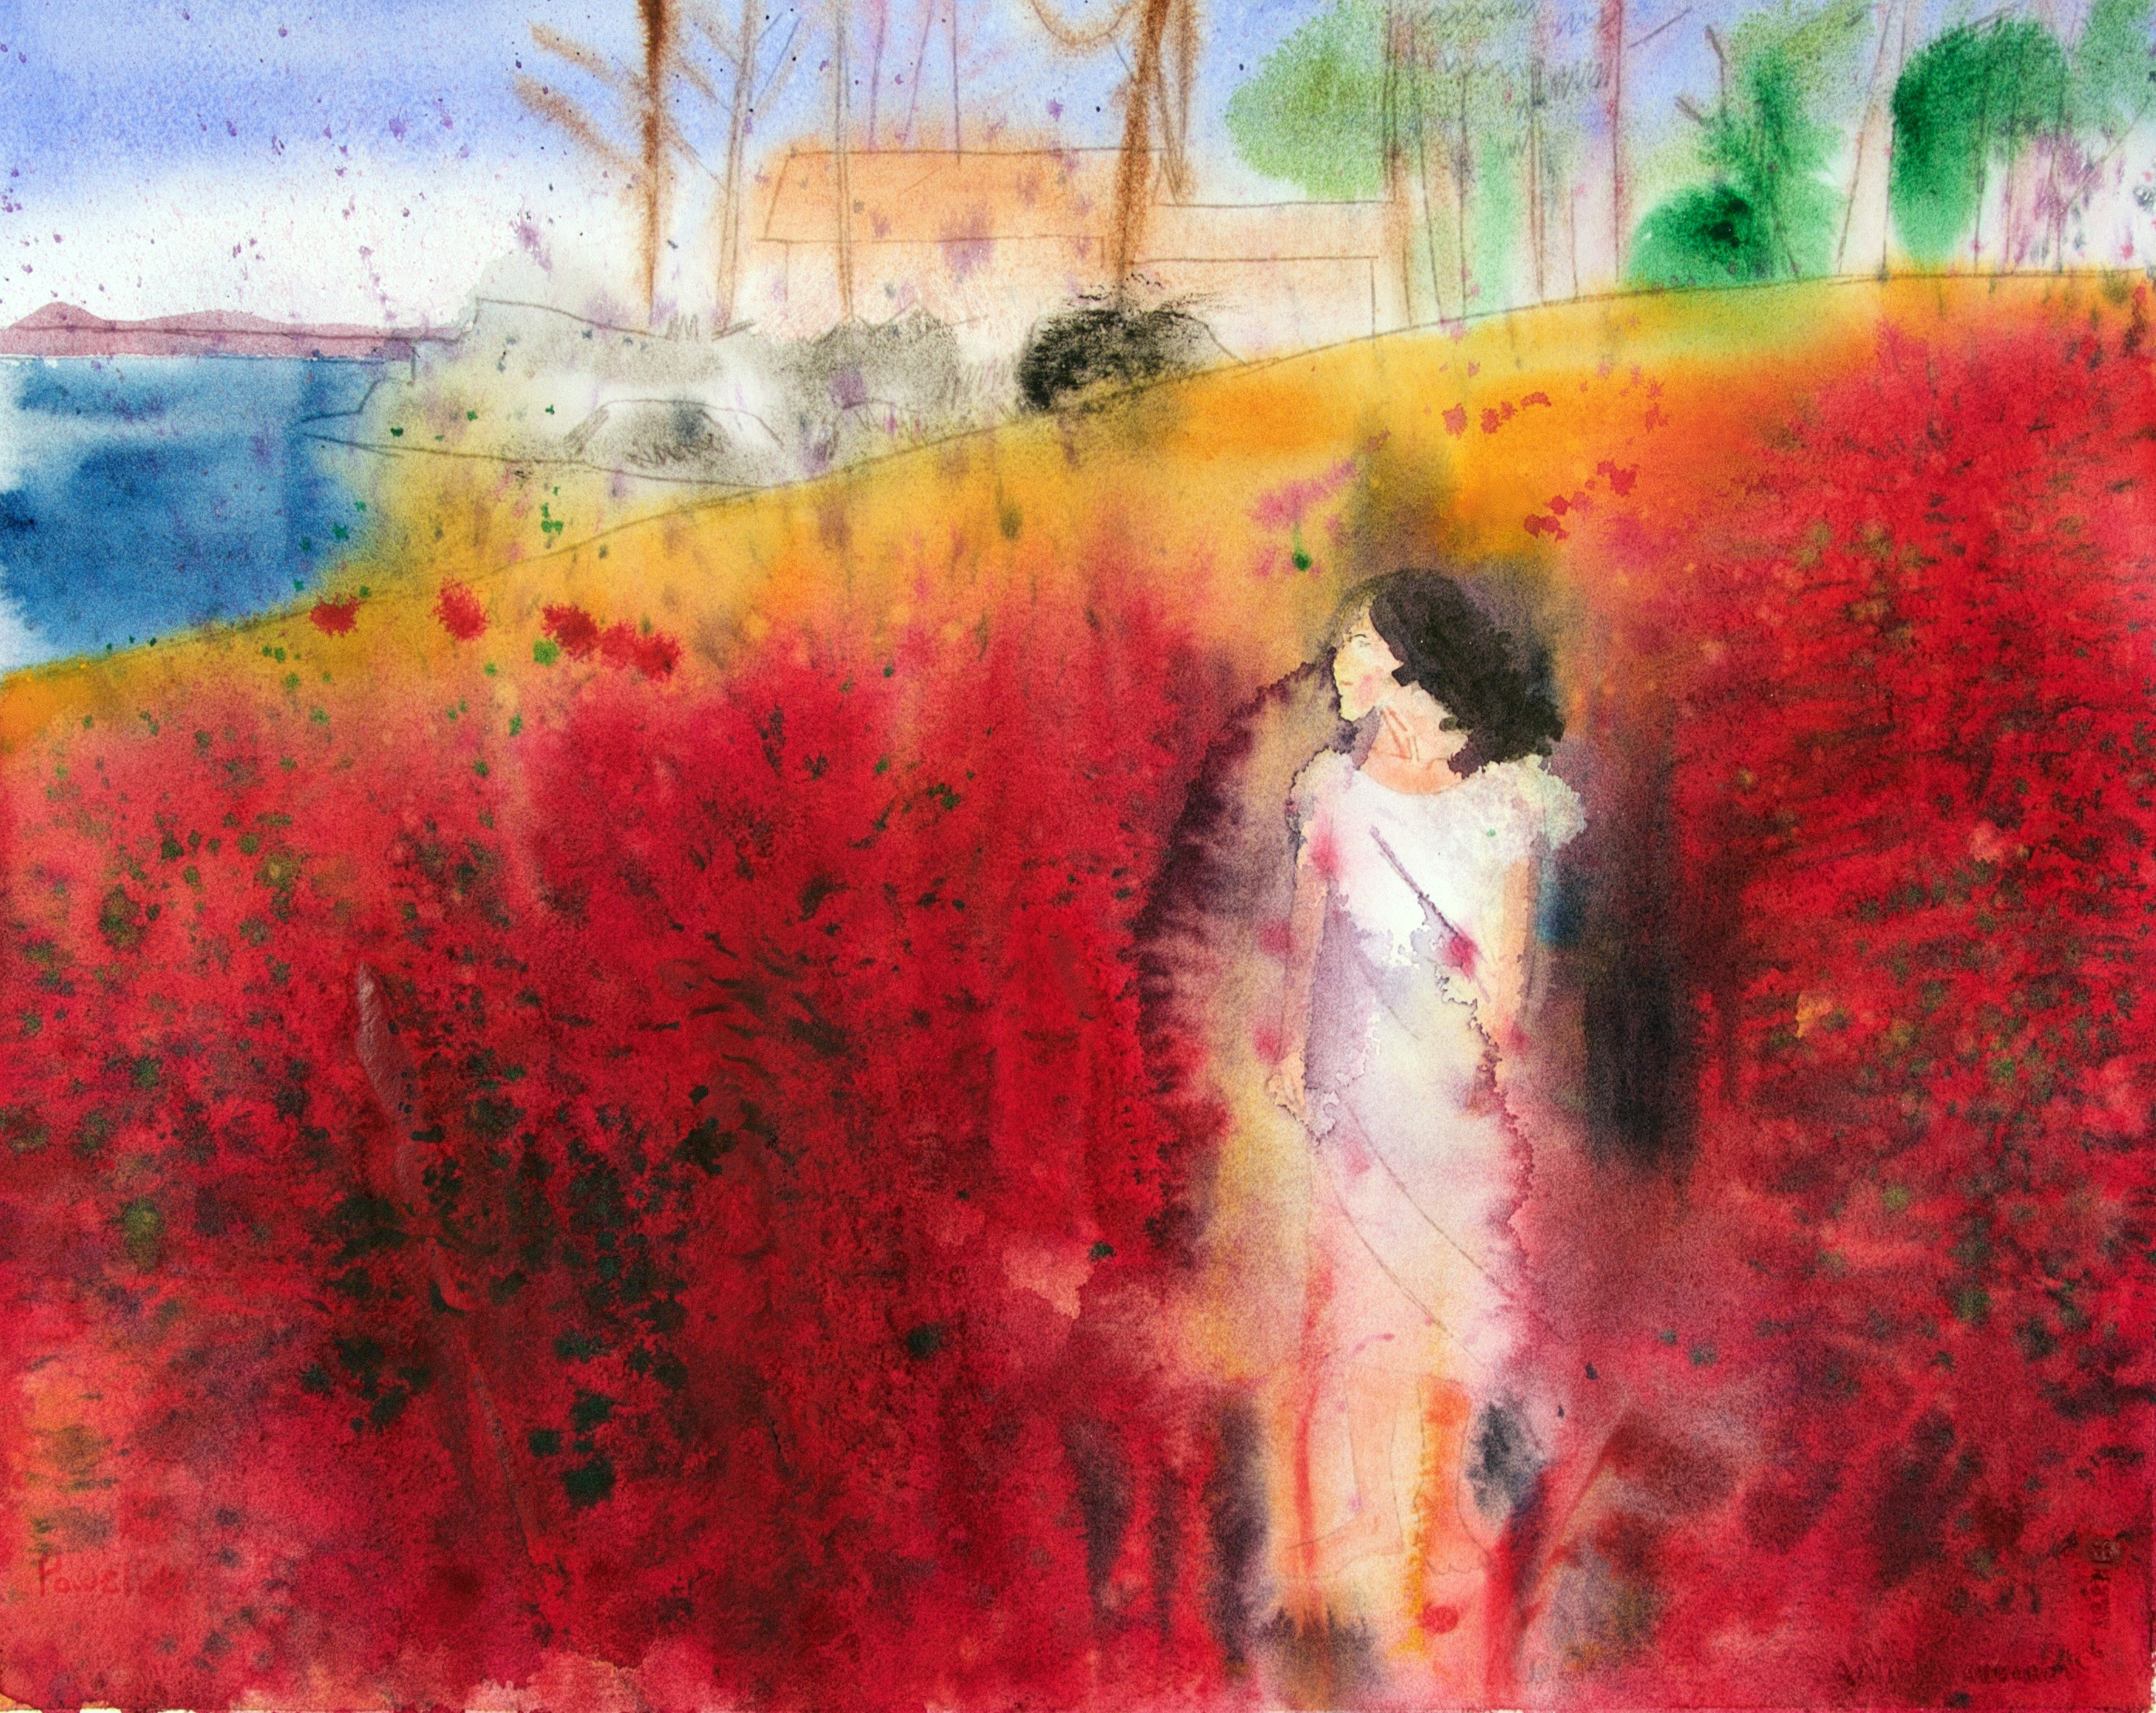 Spring Lady artwork by Brook Powell - art listed for sale on Artplode